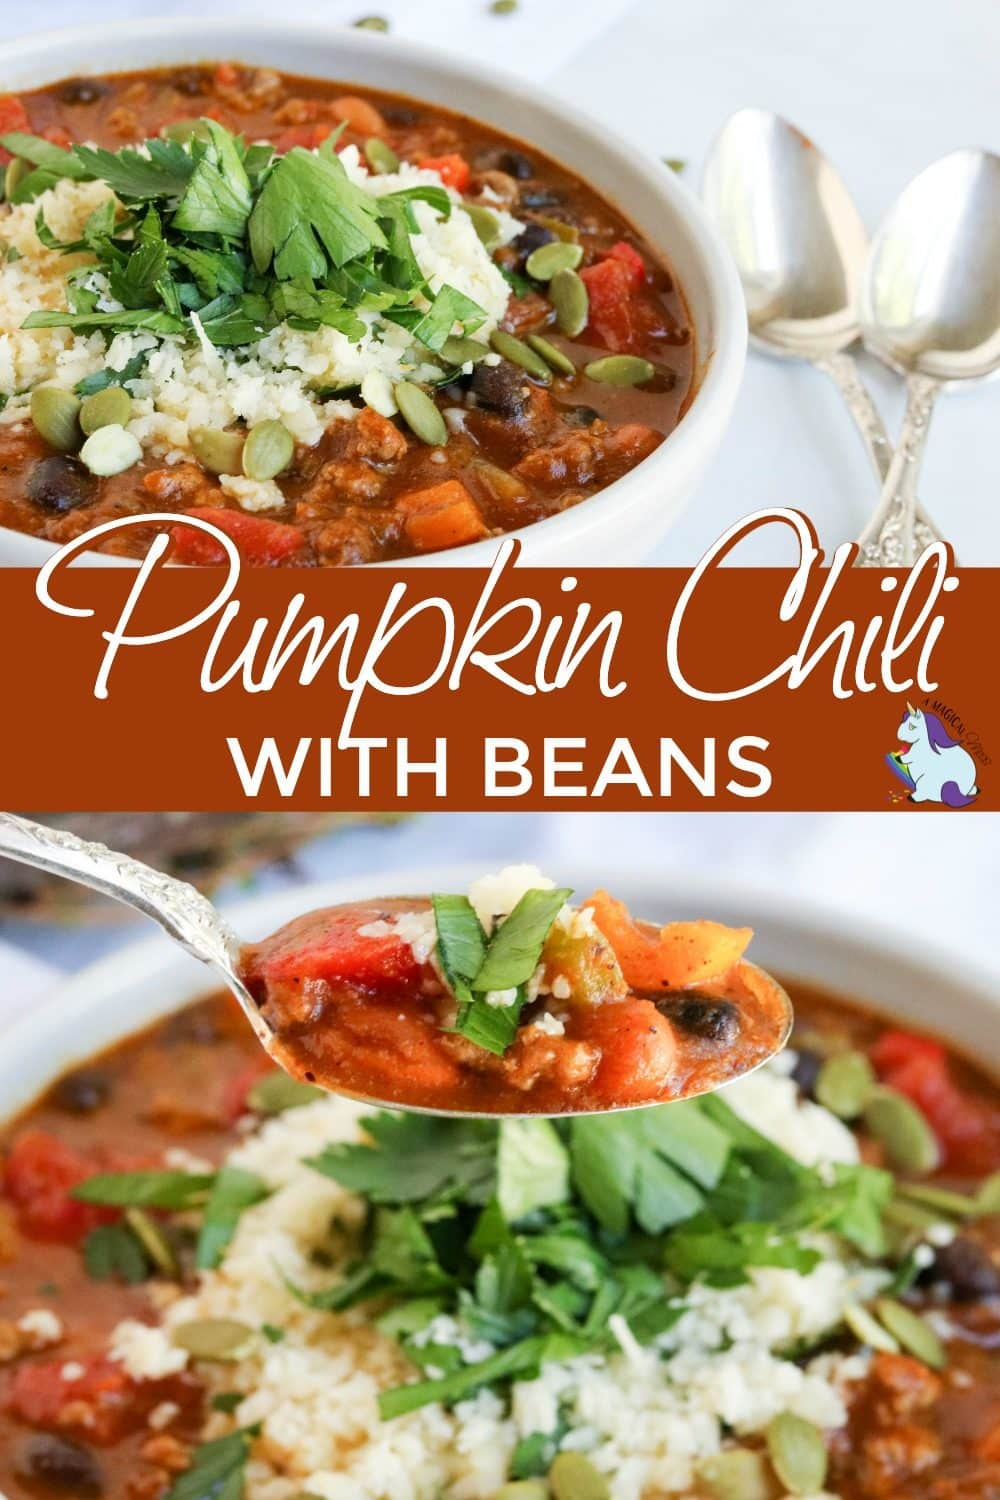 Pumpkin chili recipe in a bowl and a spoonful of it up close.